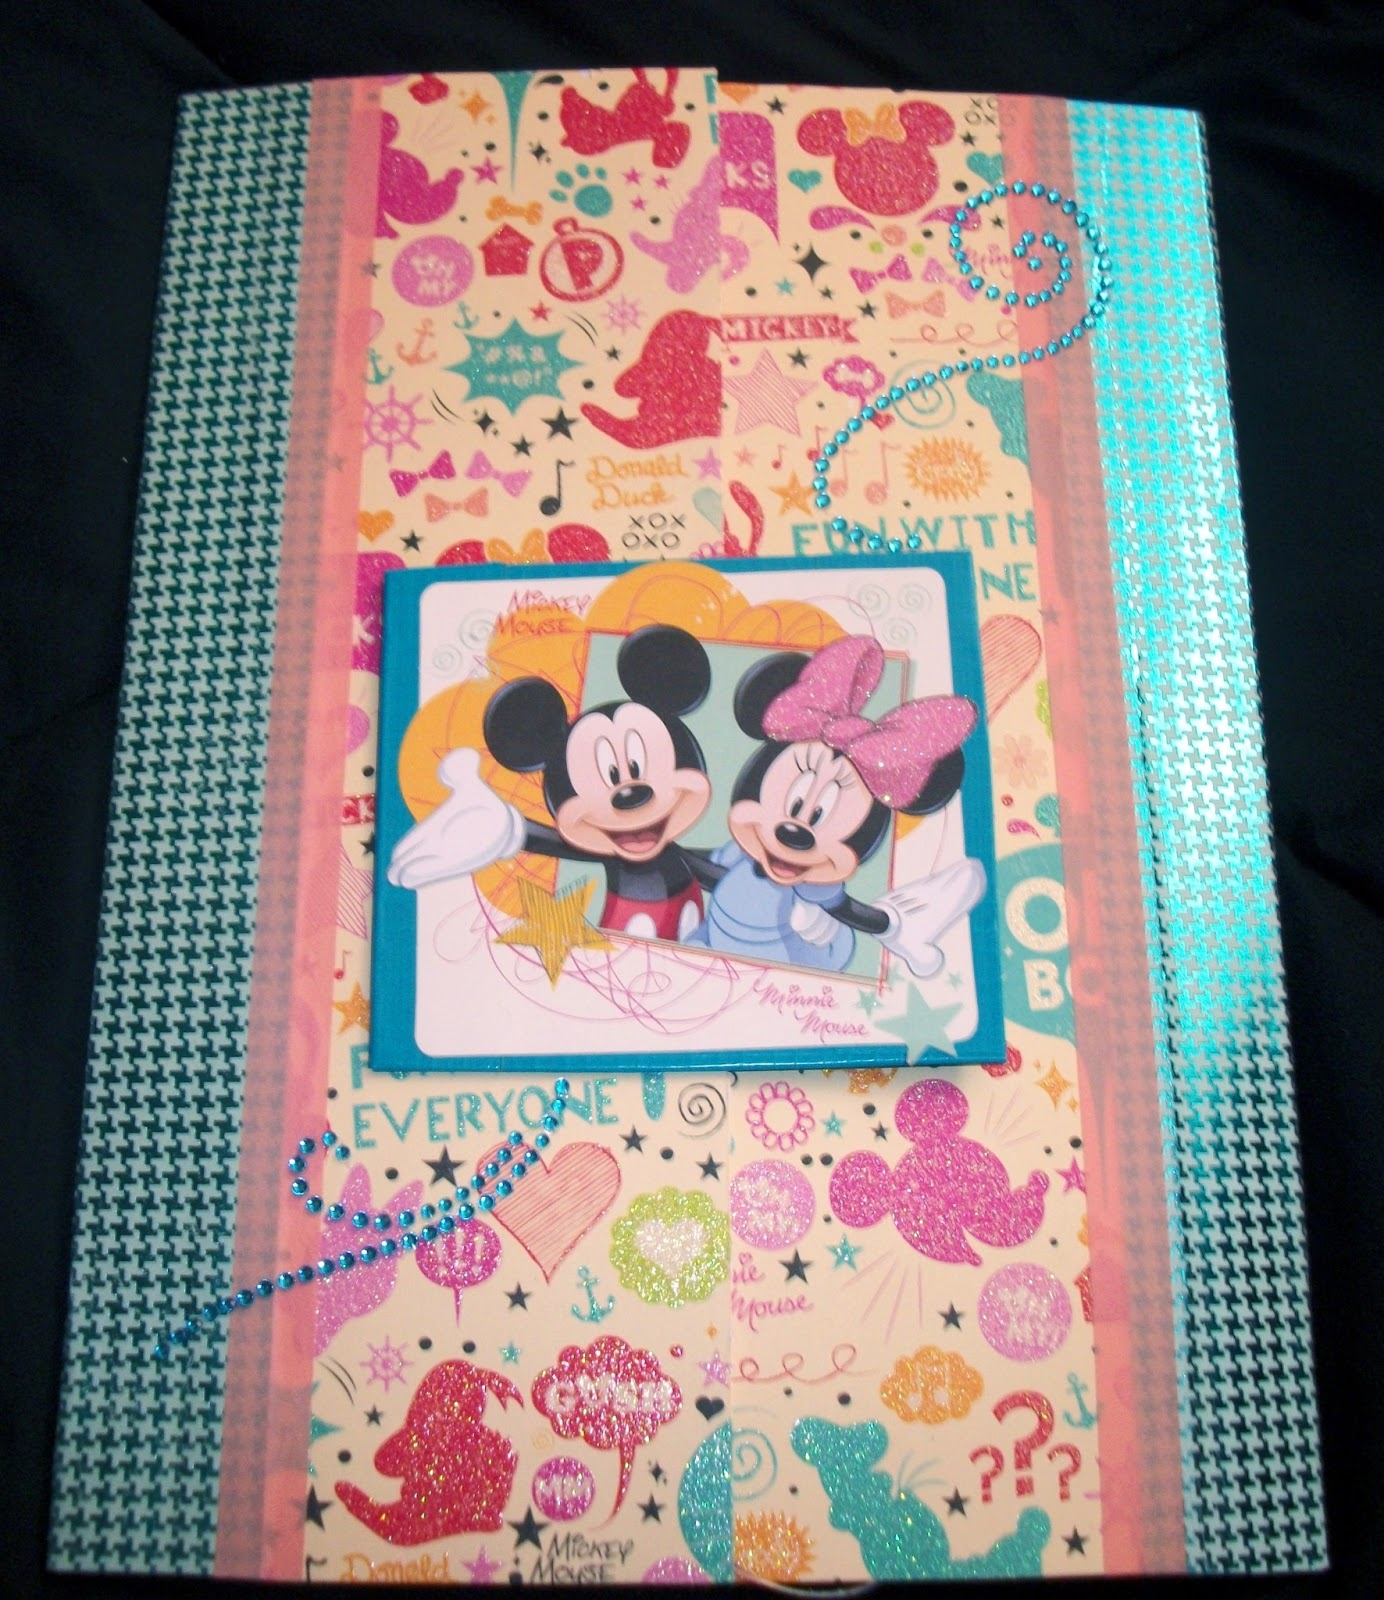 How to make scrapbook for birthday - This One S Theme Is Minnie Mouse And Daisy Duck Birthday It Measured Roughly 8 5 X 11 5 Inches I Have A Mother S Day One Coming As Well